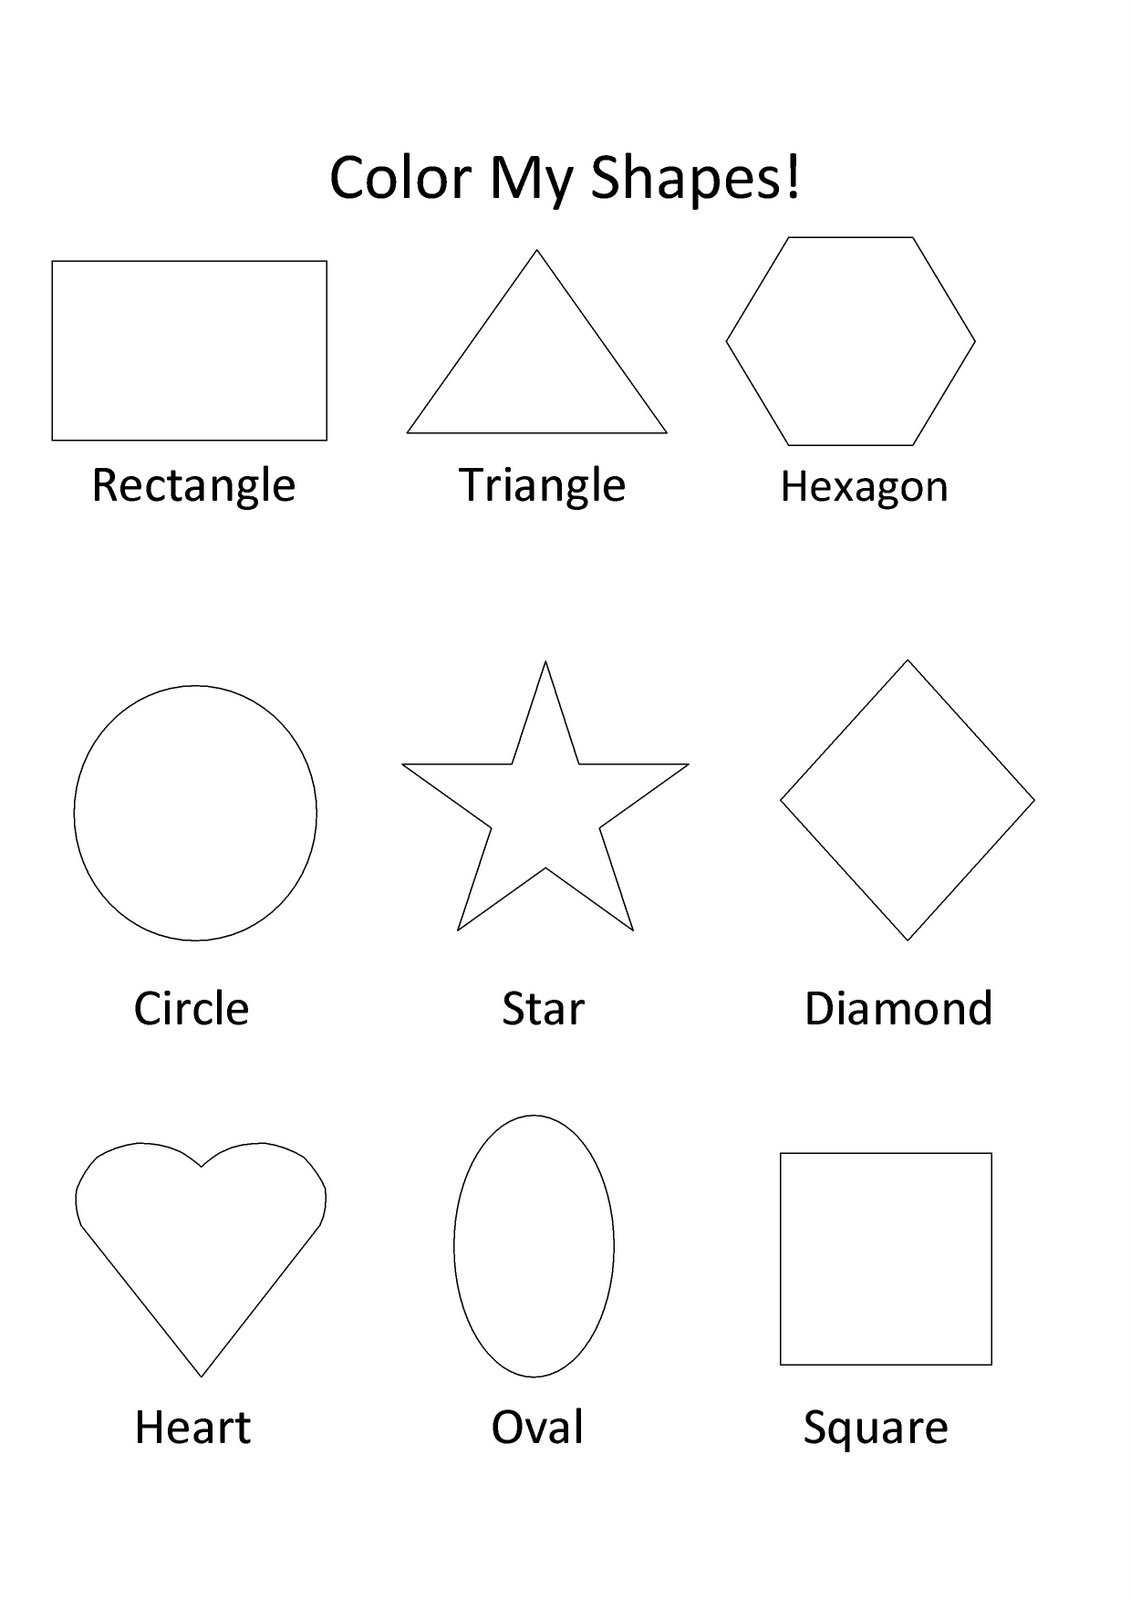 coloring pages of shapes free printable shapes coloring pages for kids coloring pages shapes of